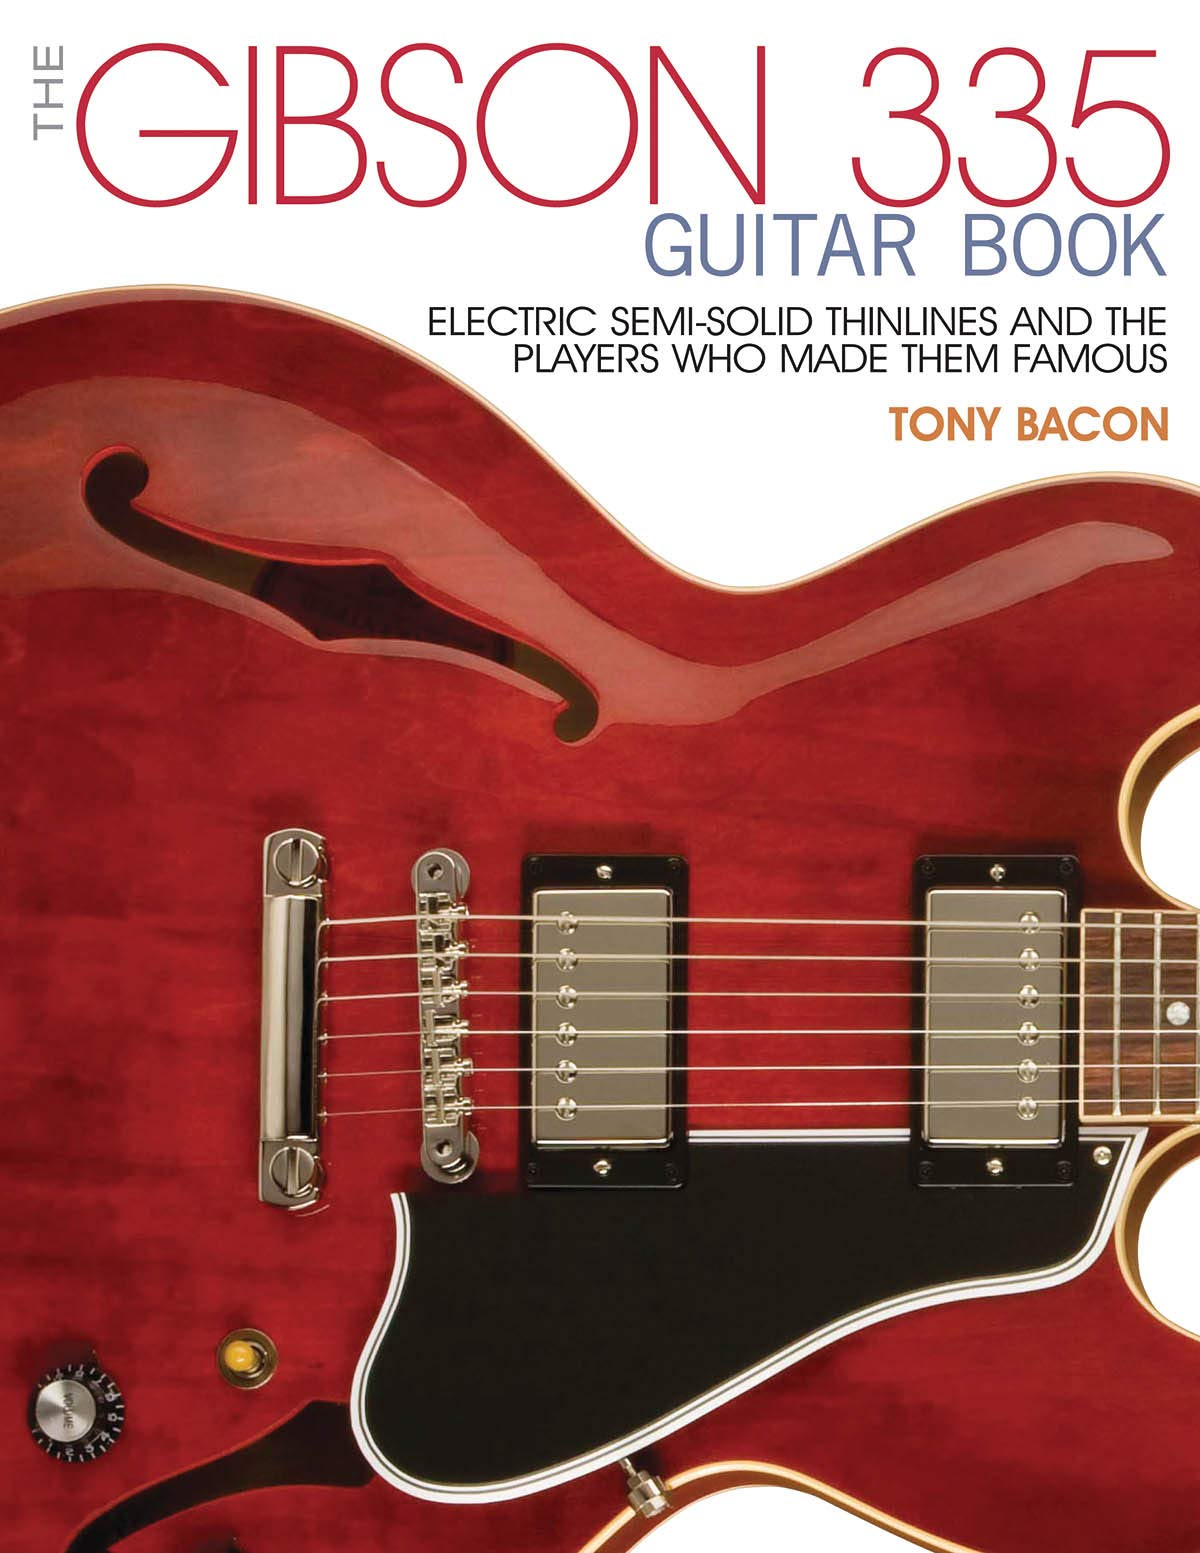 The Gibson 335 Guitar Book: Electric Semi-Solid Thinlines